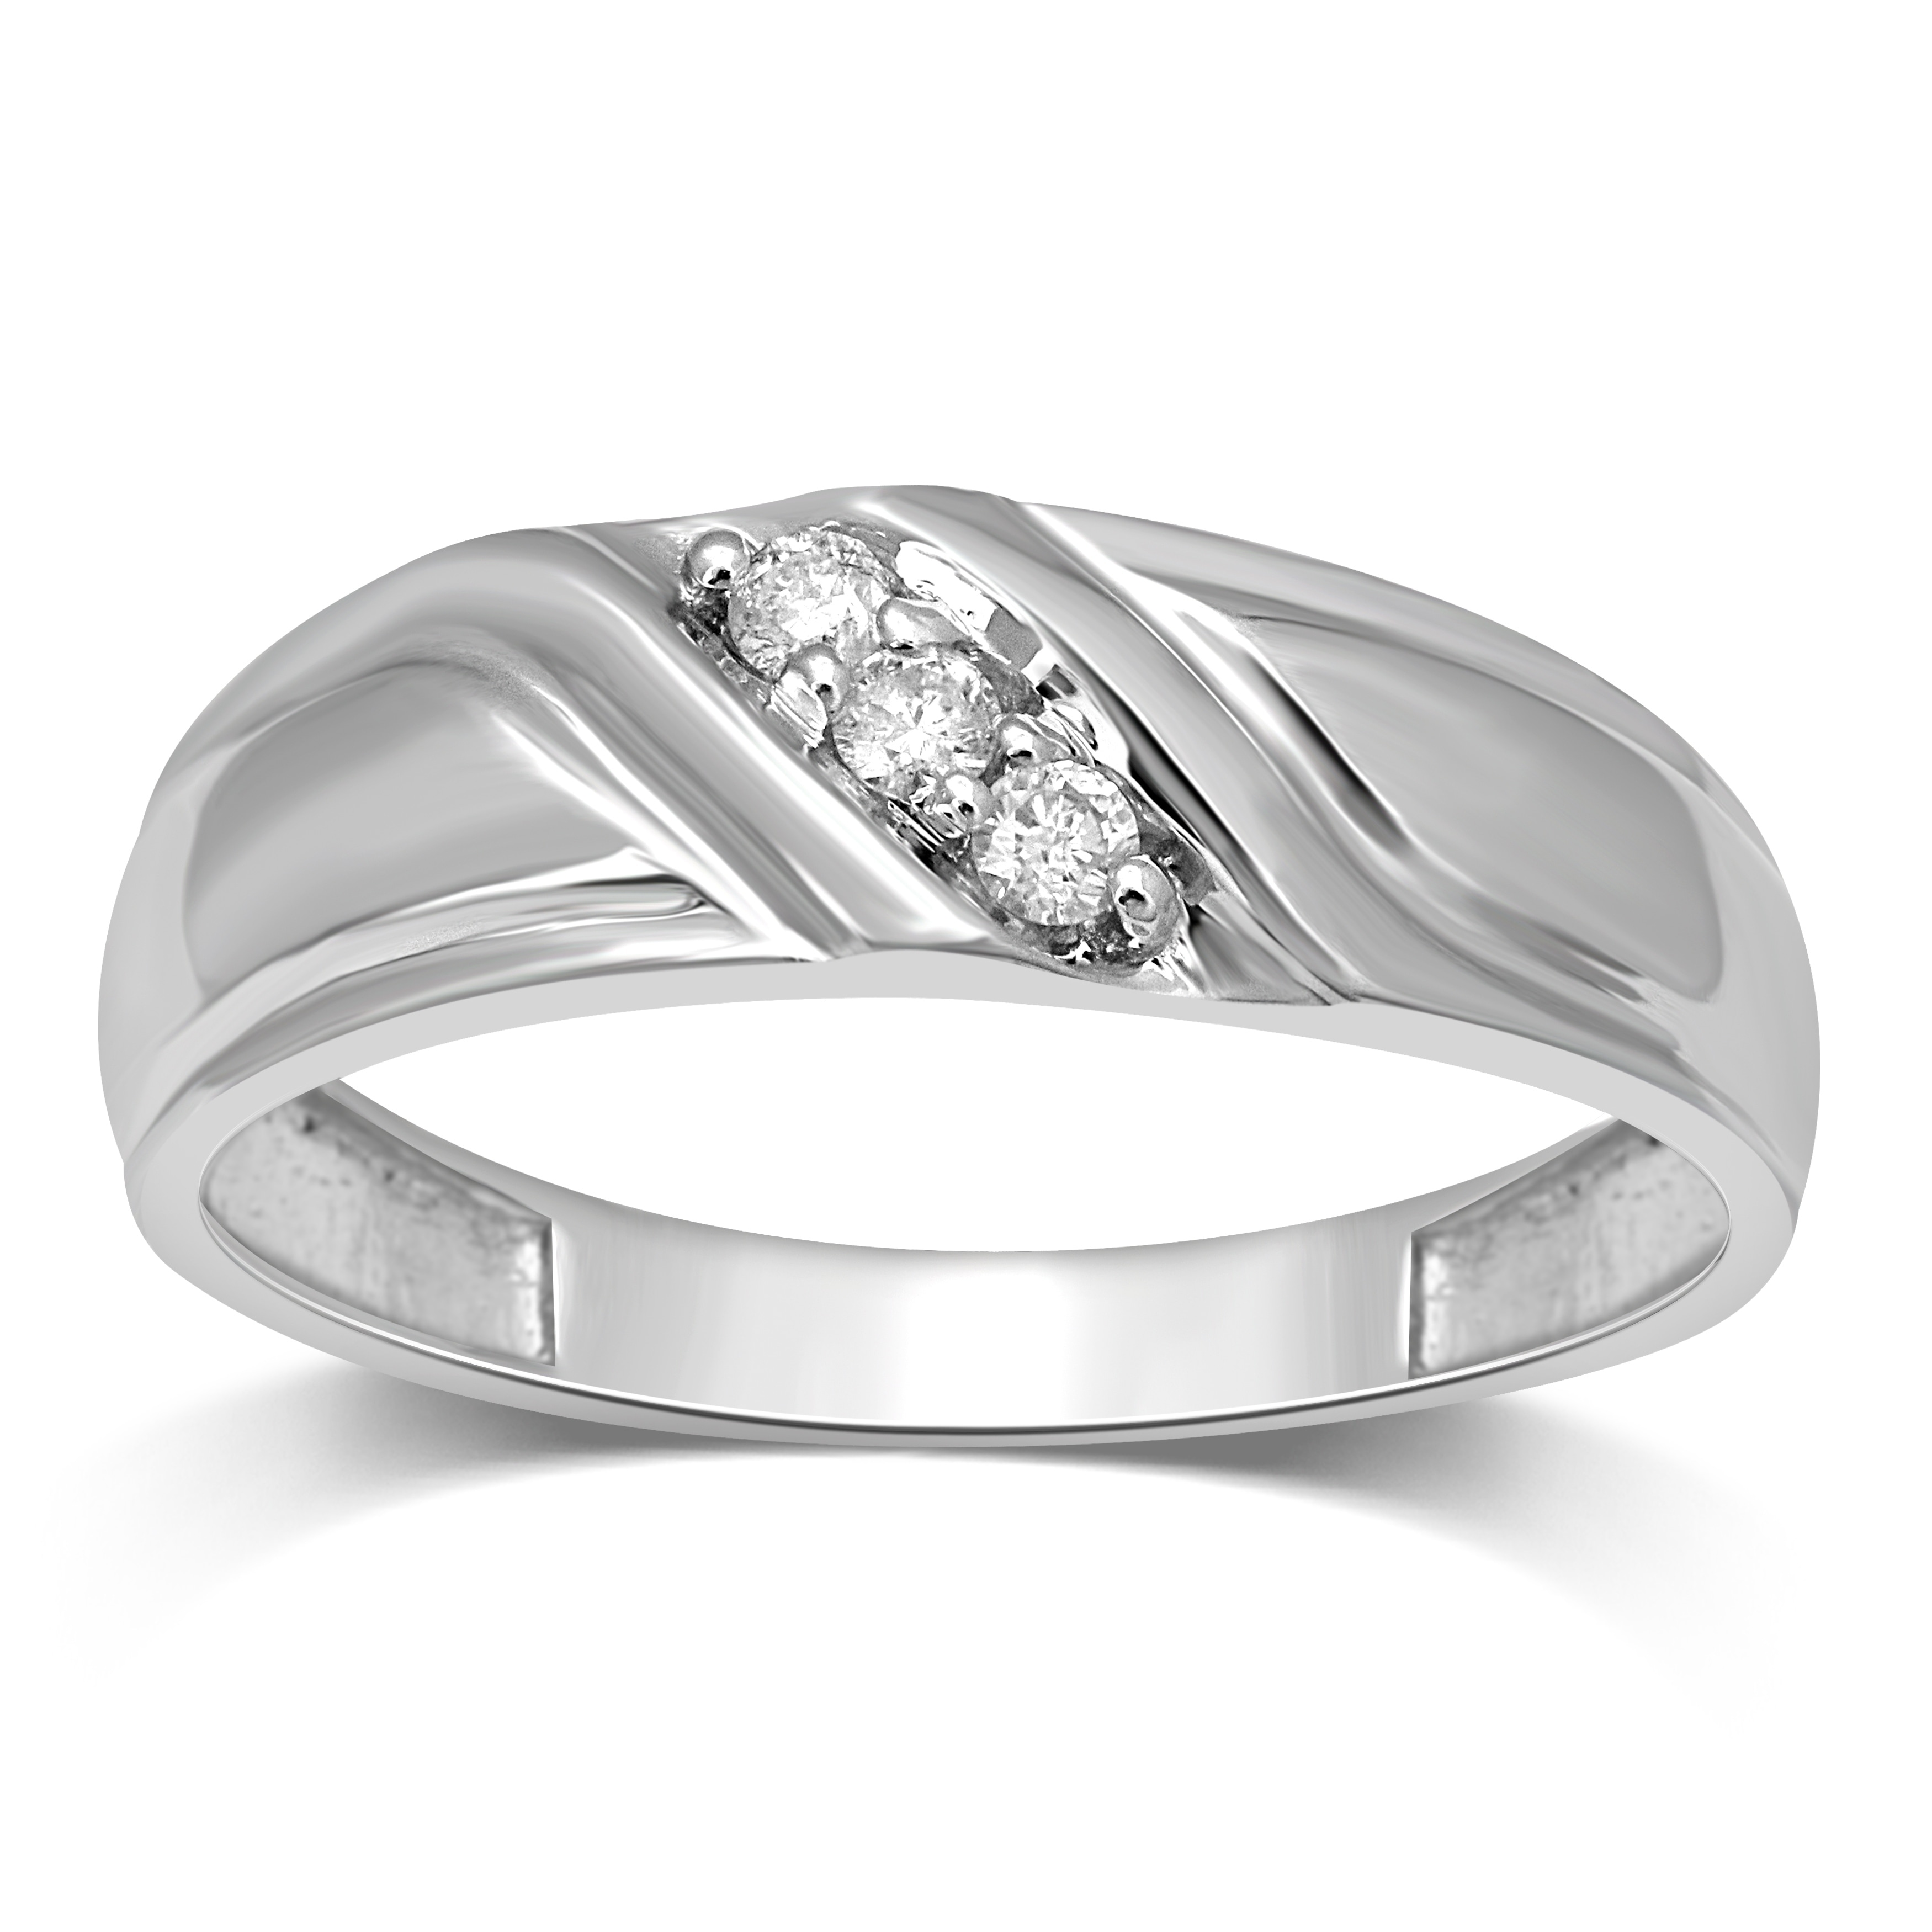 Unending Love Men S 10k Gold 1 10 Ctw Diamond Wedding Band On Free Shipping Today 10277528